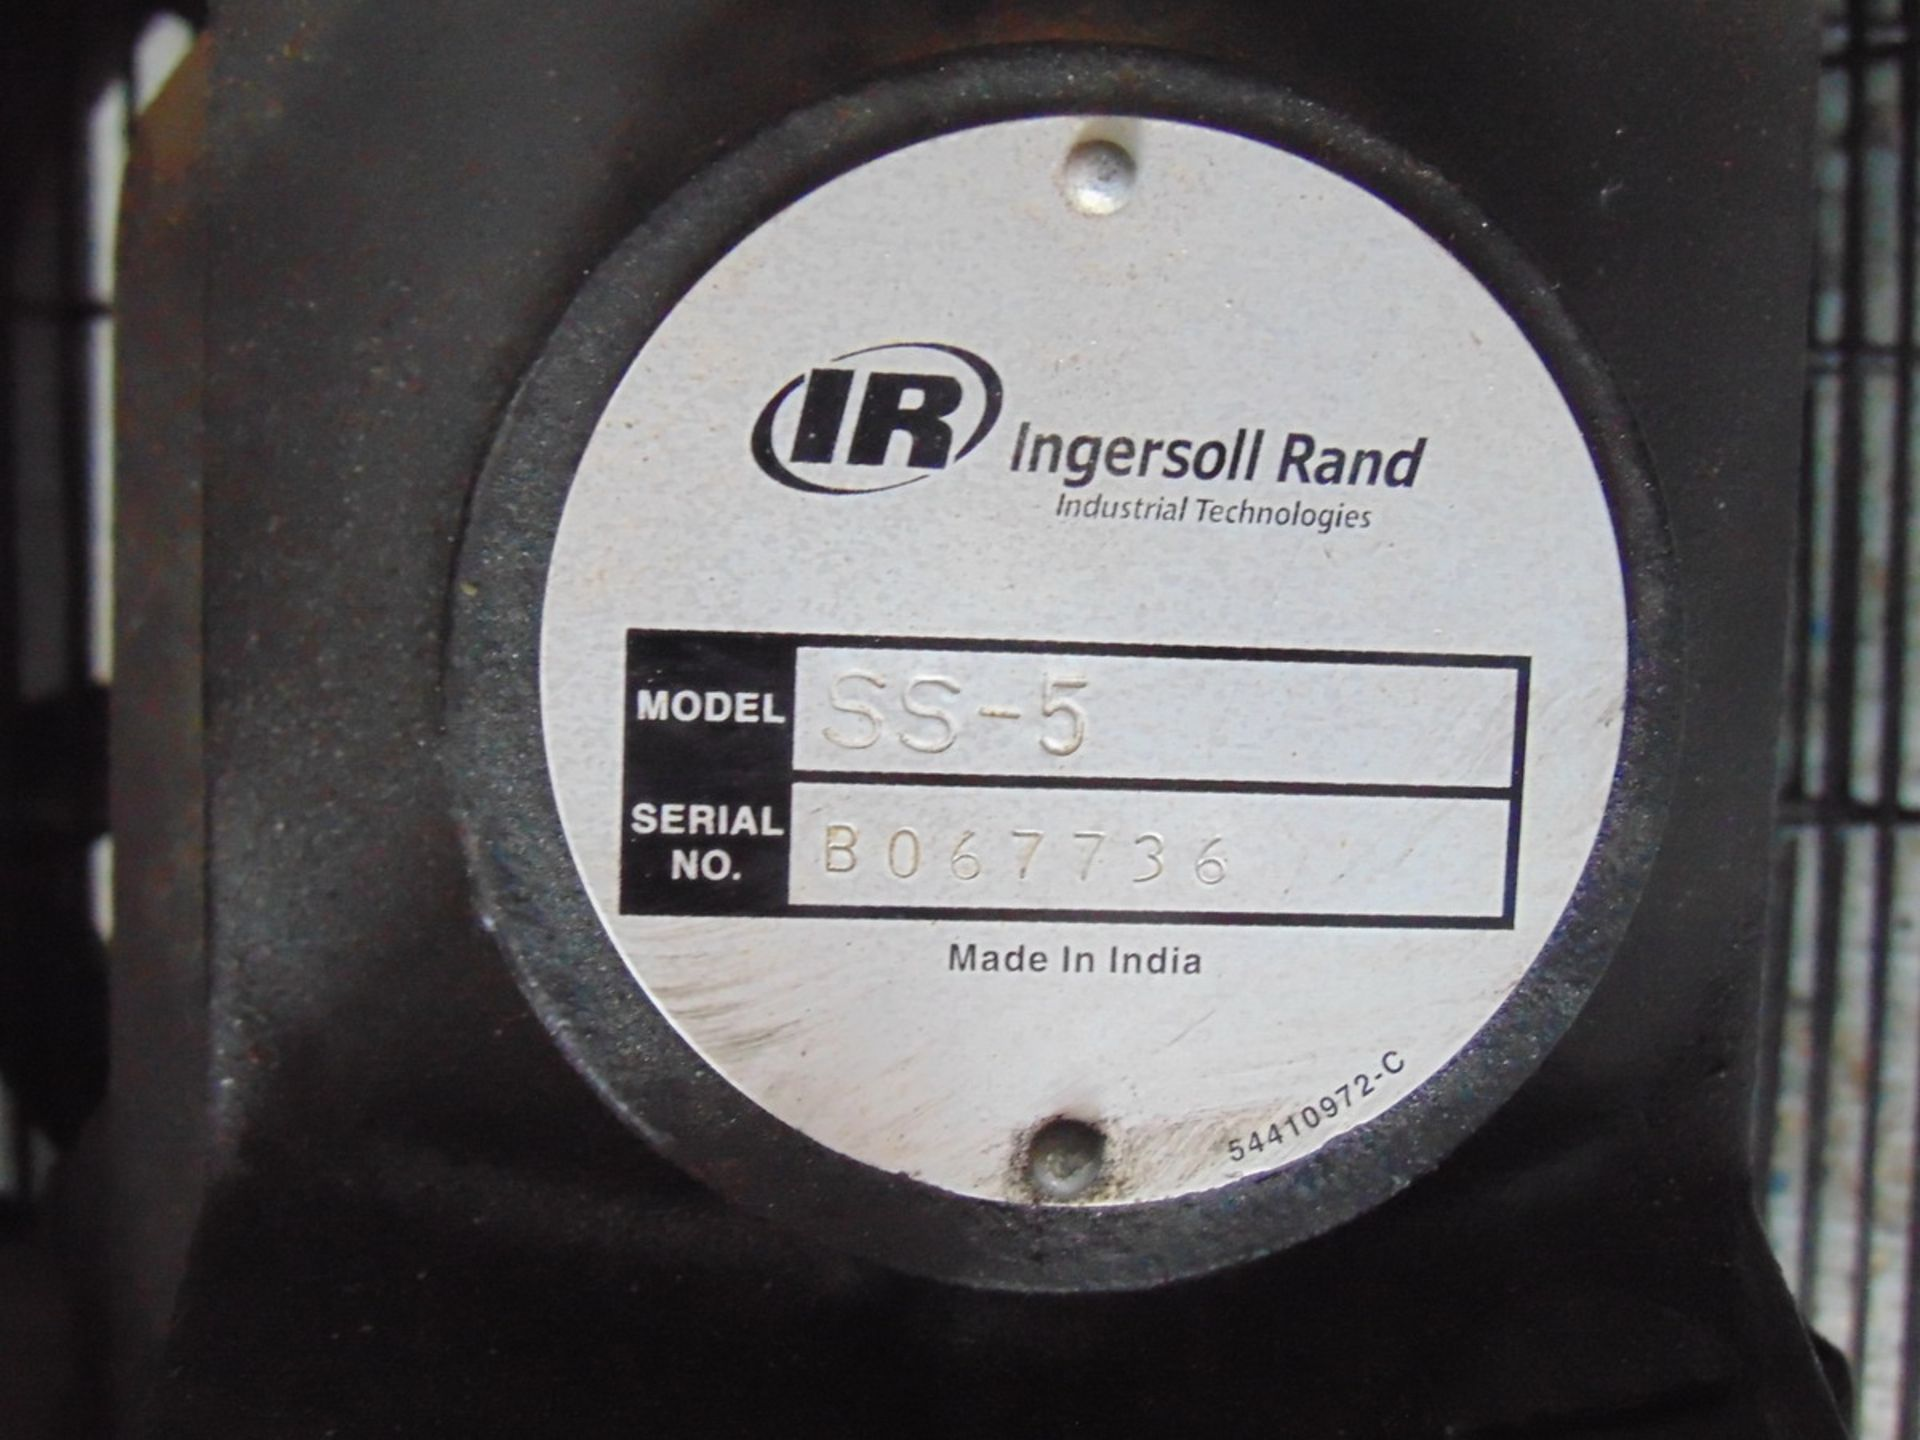 Lot 103 - Ingersoll Rand SS-5 5 HP Air Compressor Trailer EXCLUDED S/N B067736